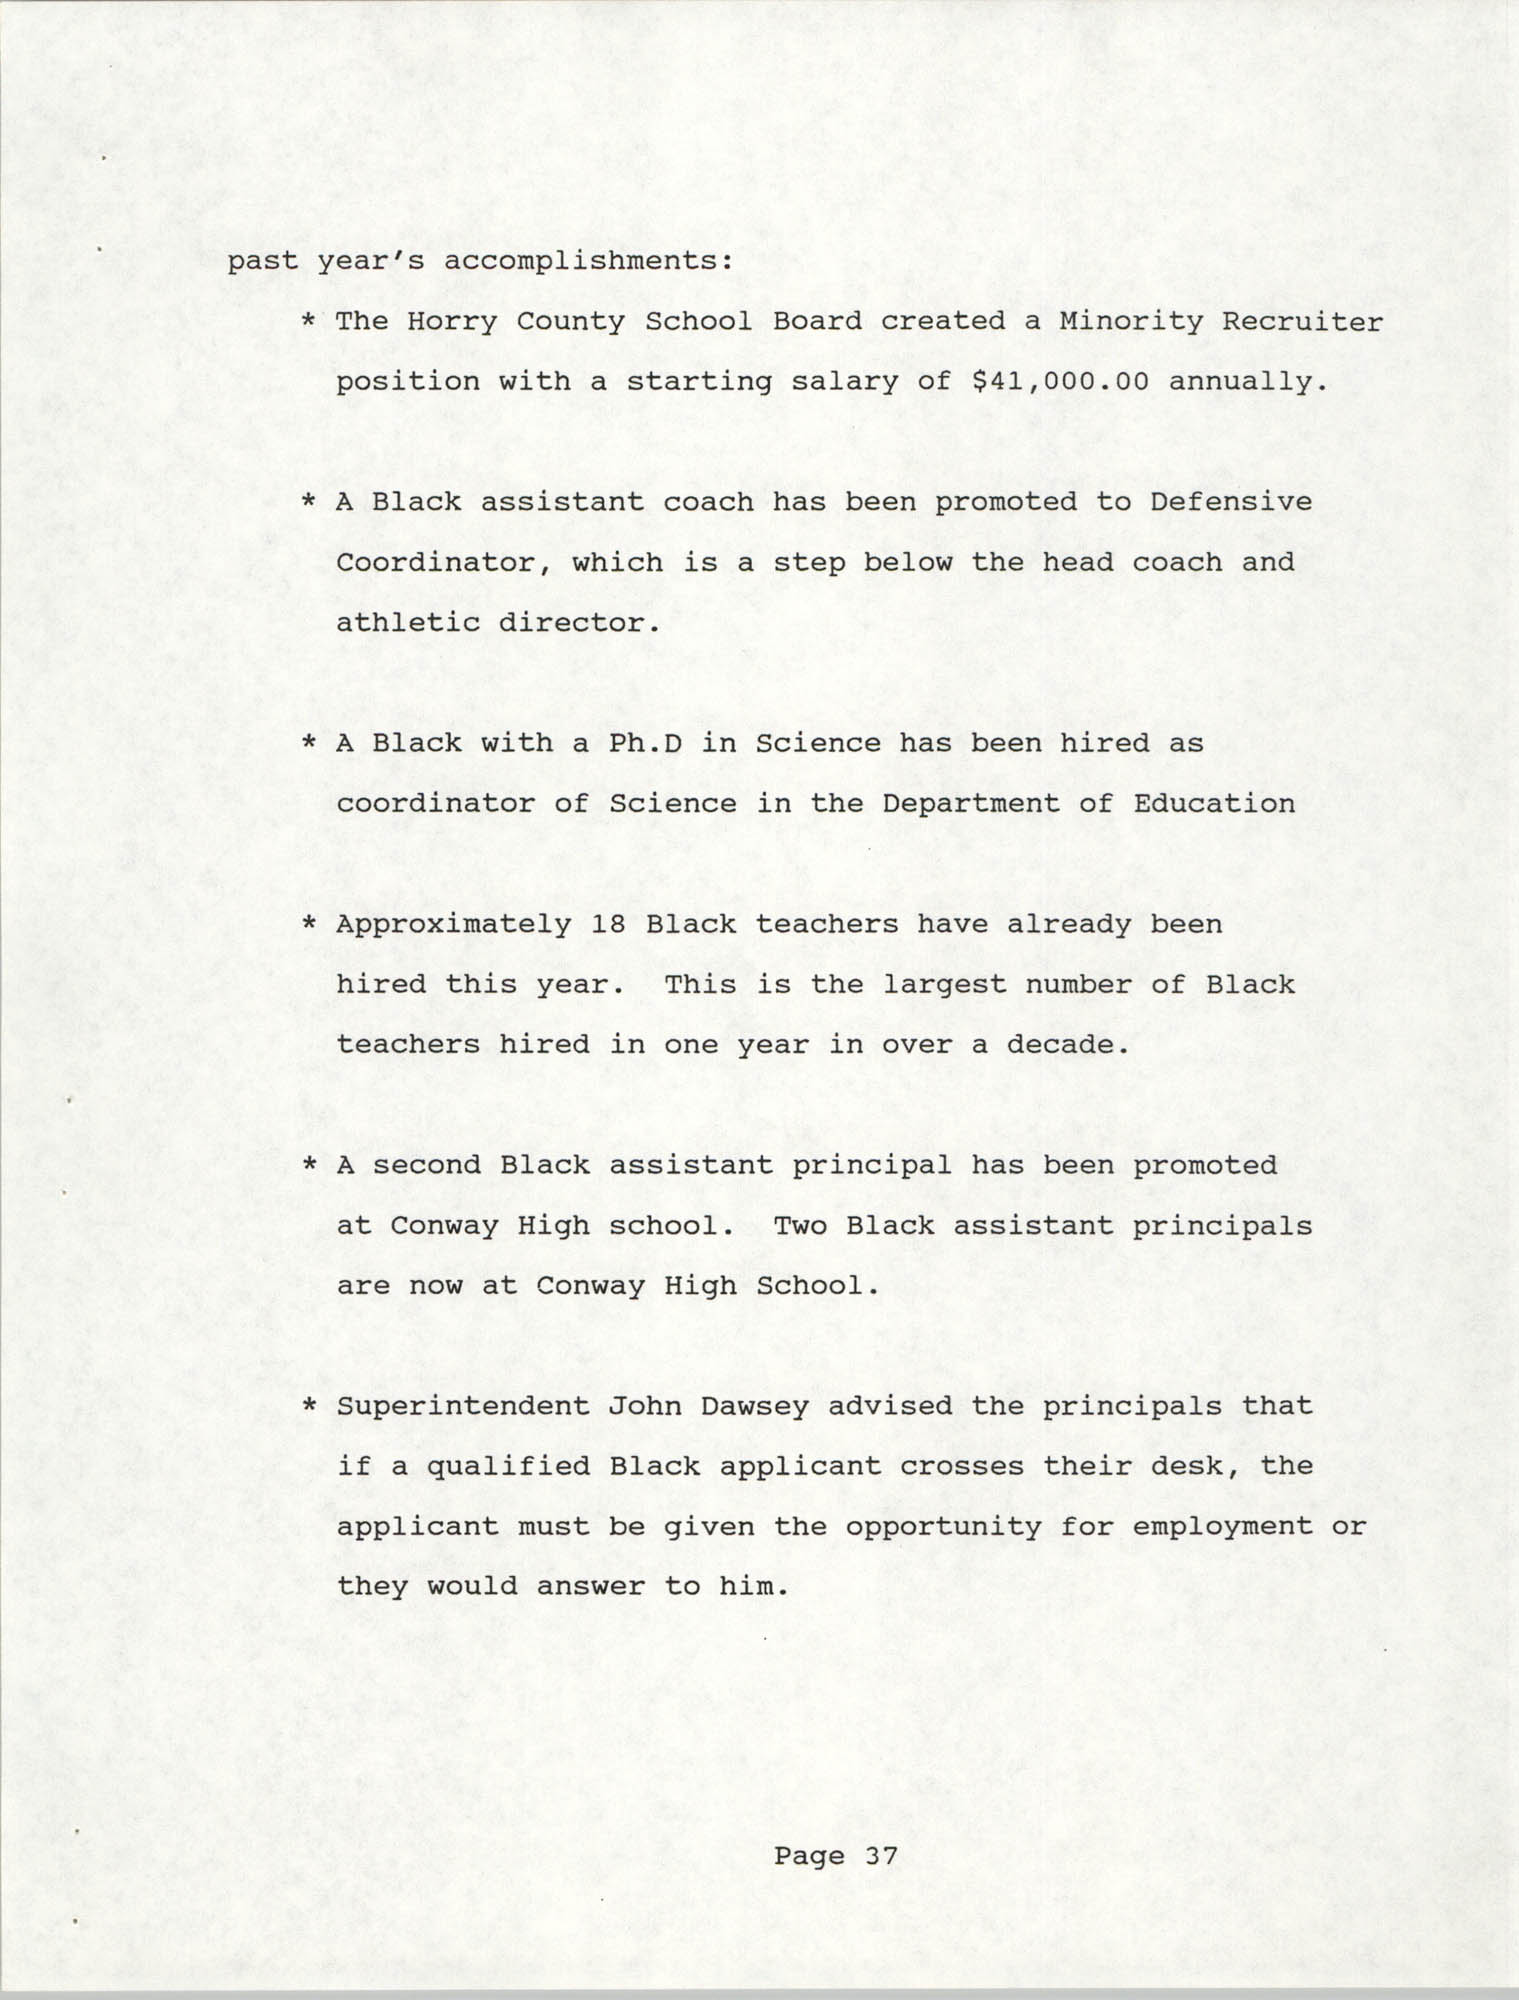 South Carolina Conference of Branches of the NAACP, 1990 Annual Report, Part Two, Page 37